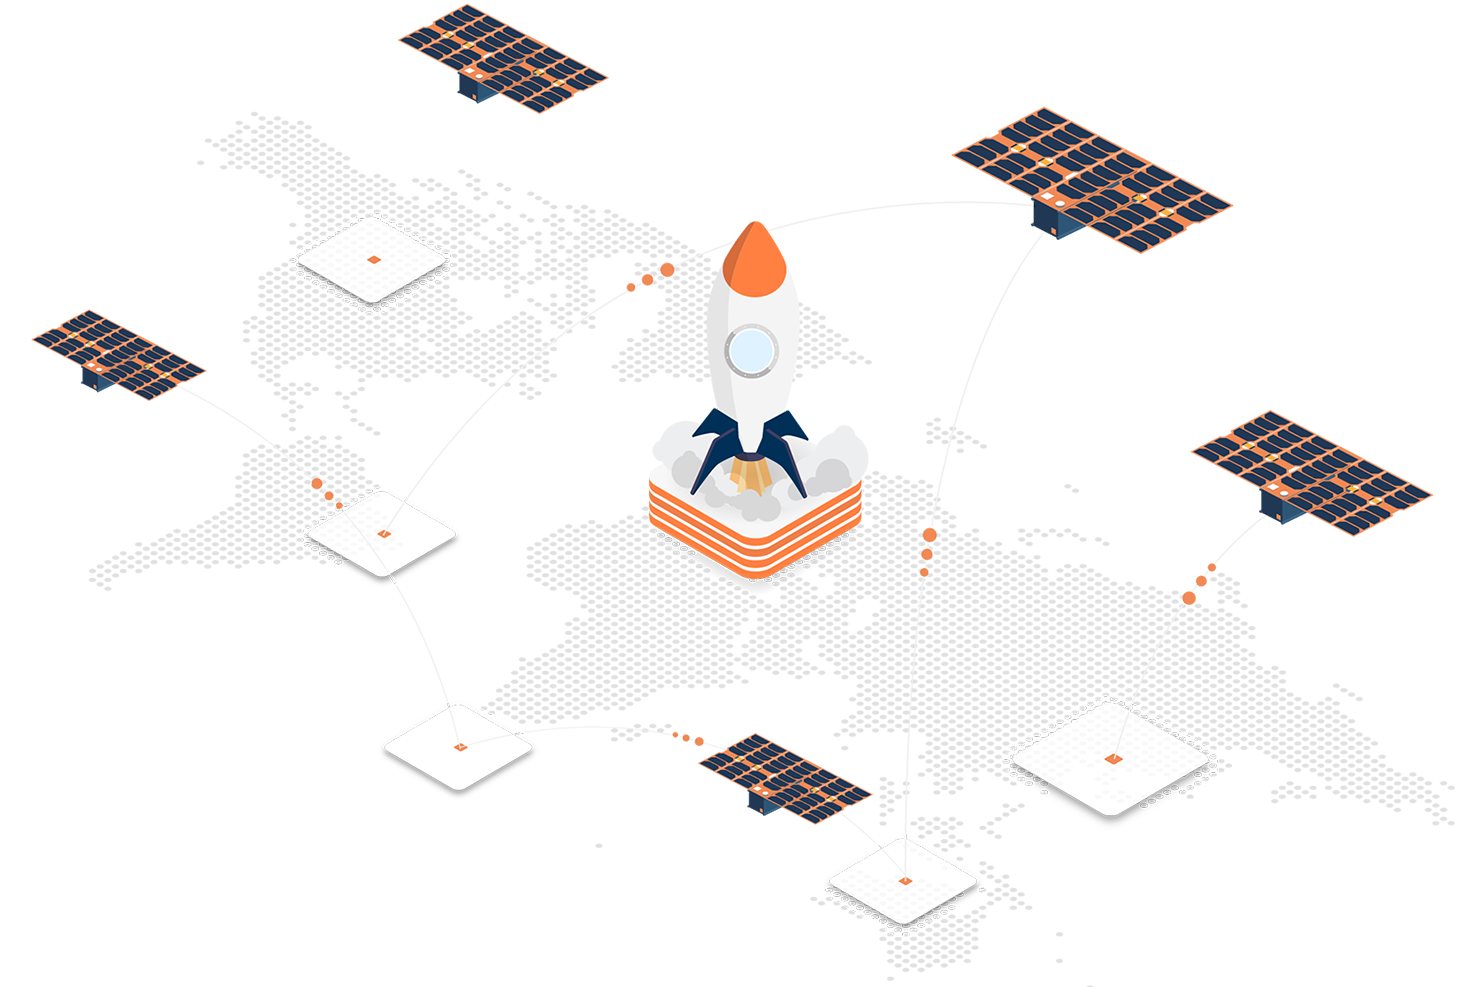 astrocast_launch_missions_graphic